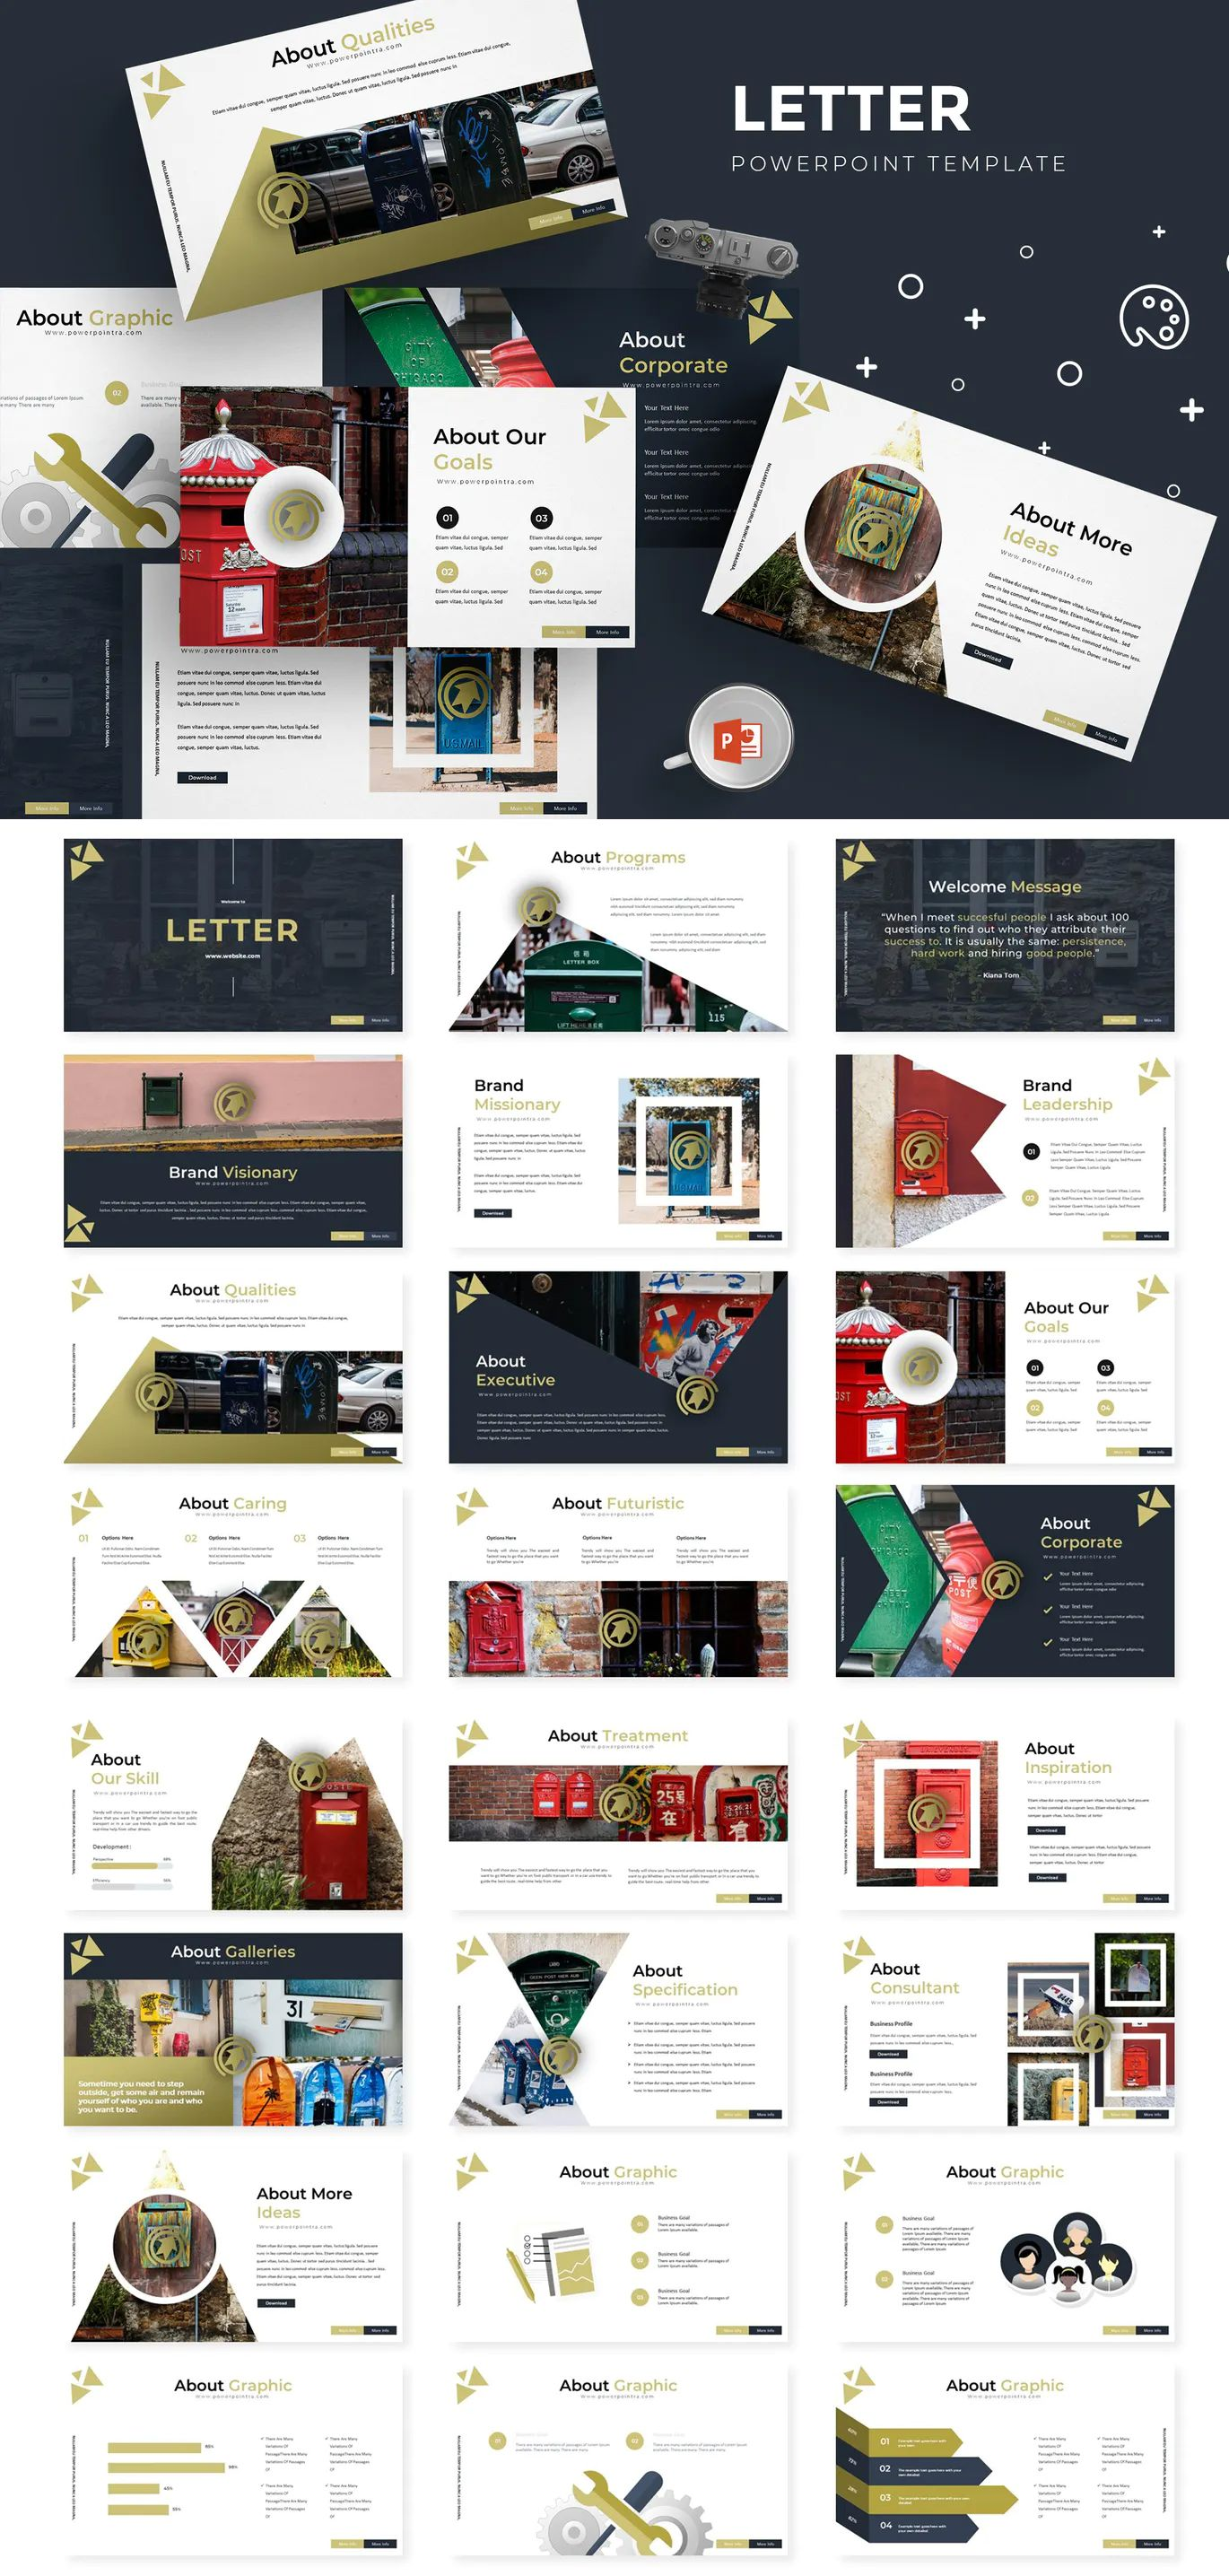 Letter Powerpoint Template by aqrstudio on Powerpoint